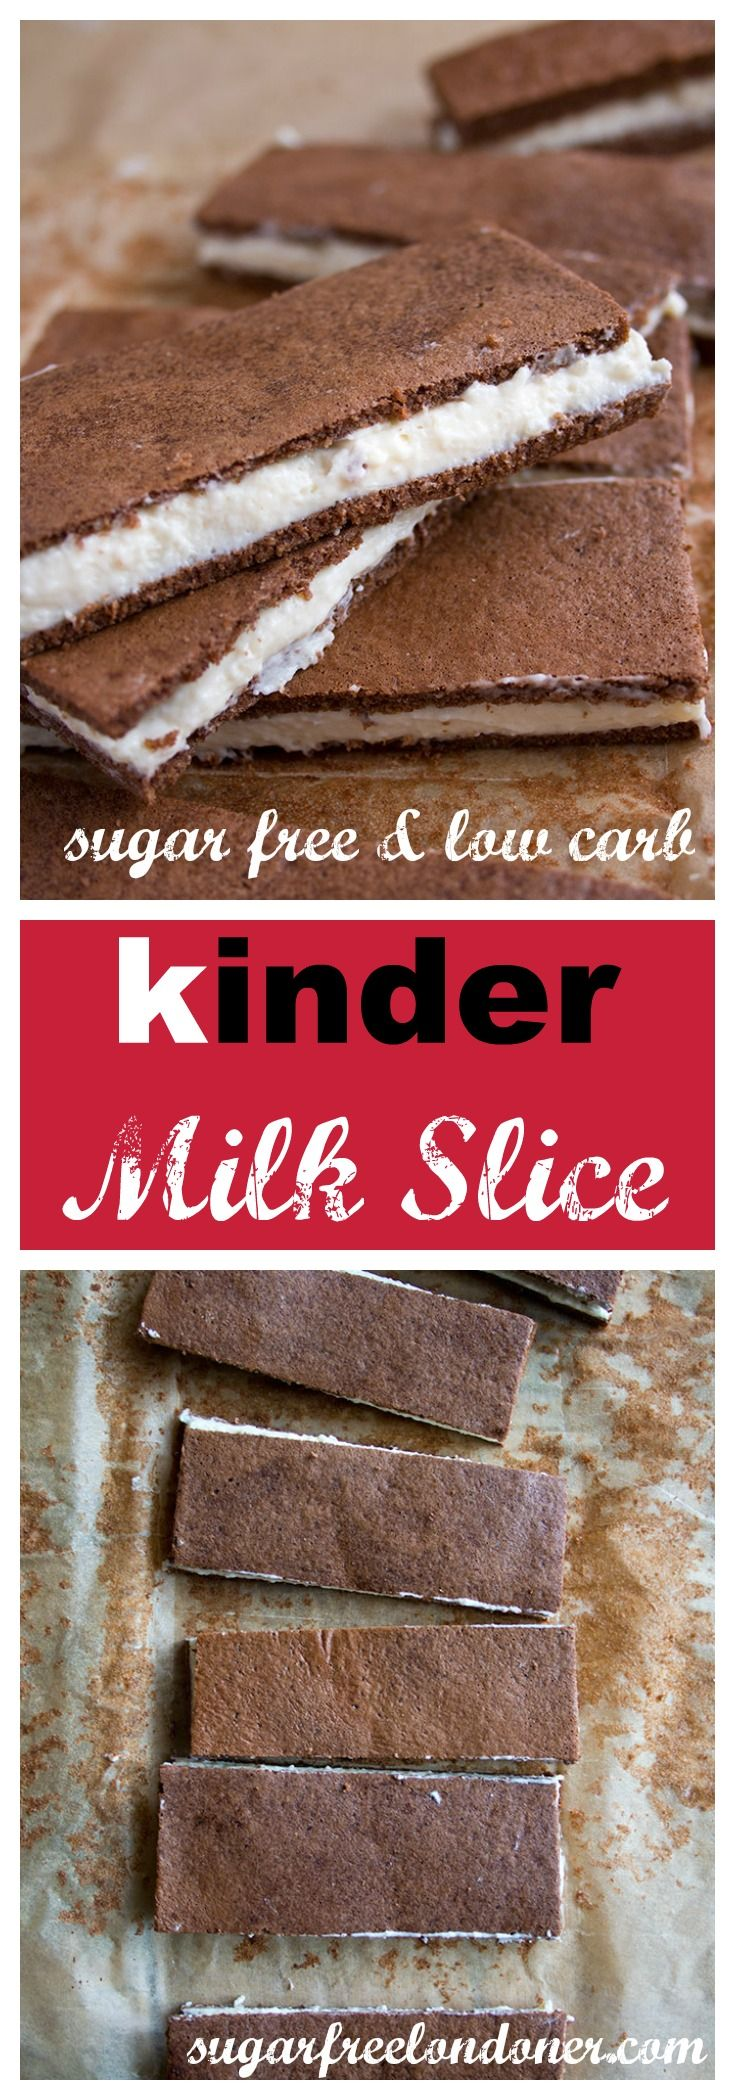 A healthy makeover for a European cult snack: Say hello to the sugar free kinder milk slice. Makes a delicious low carb keto dessert. Not just for kids!